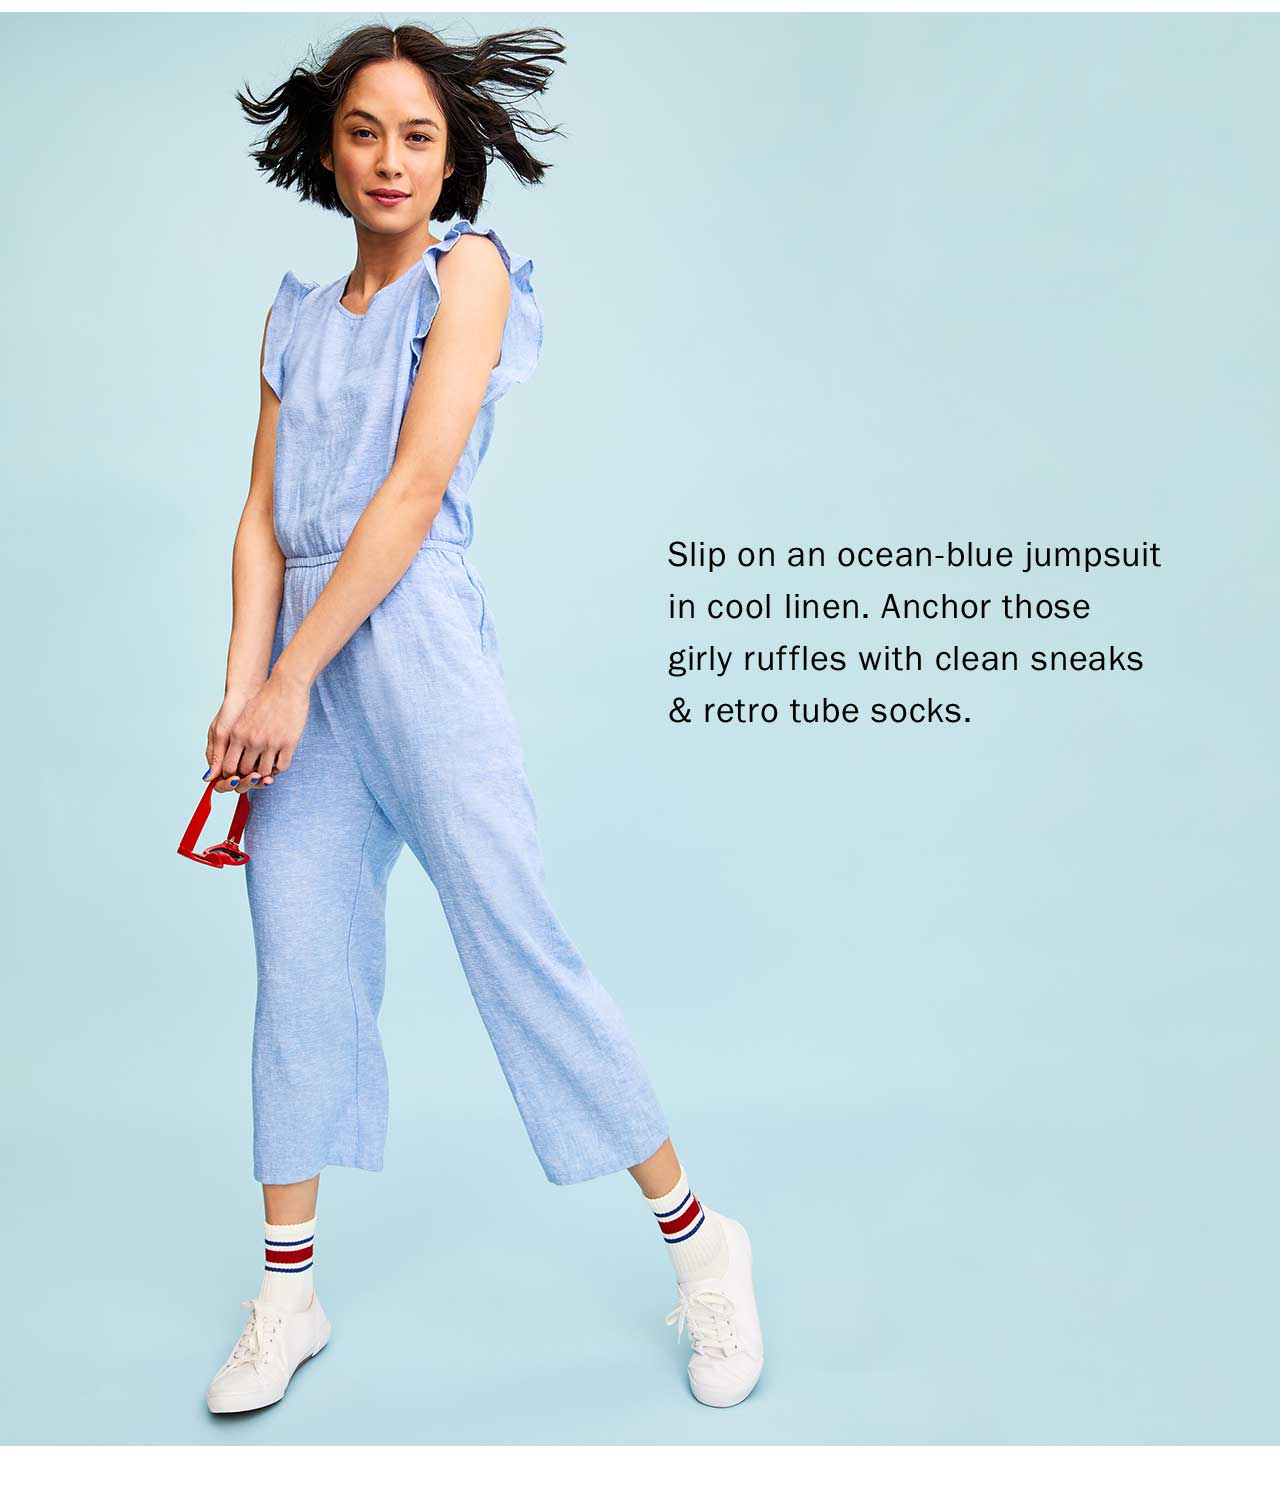 Slip on an ocean-blue jumpsuit in cool linen. Anchor those girly ruffles with clean sneaks & retro tube socks.